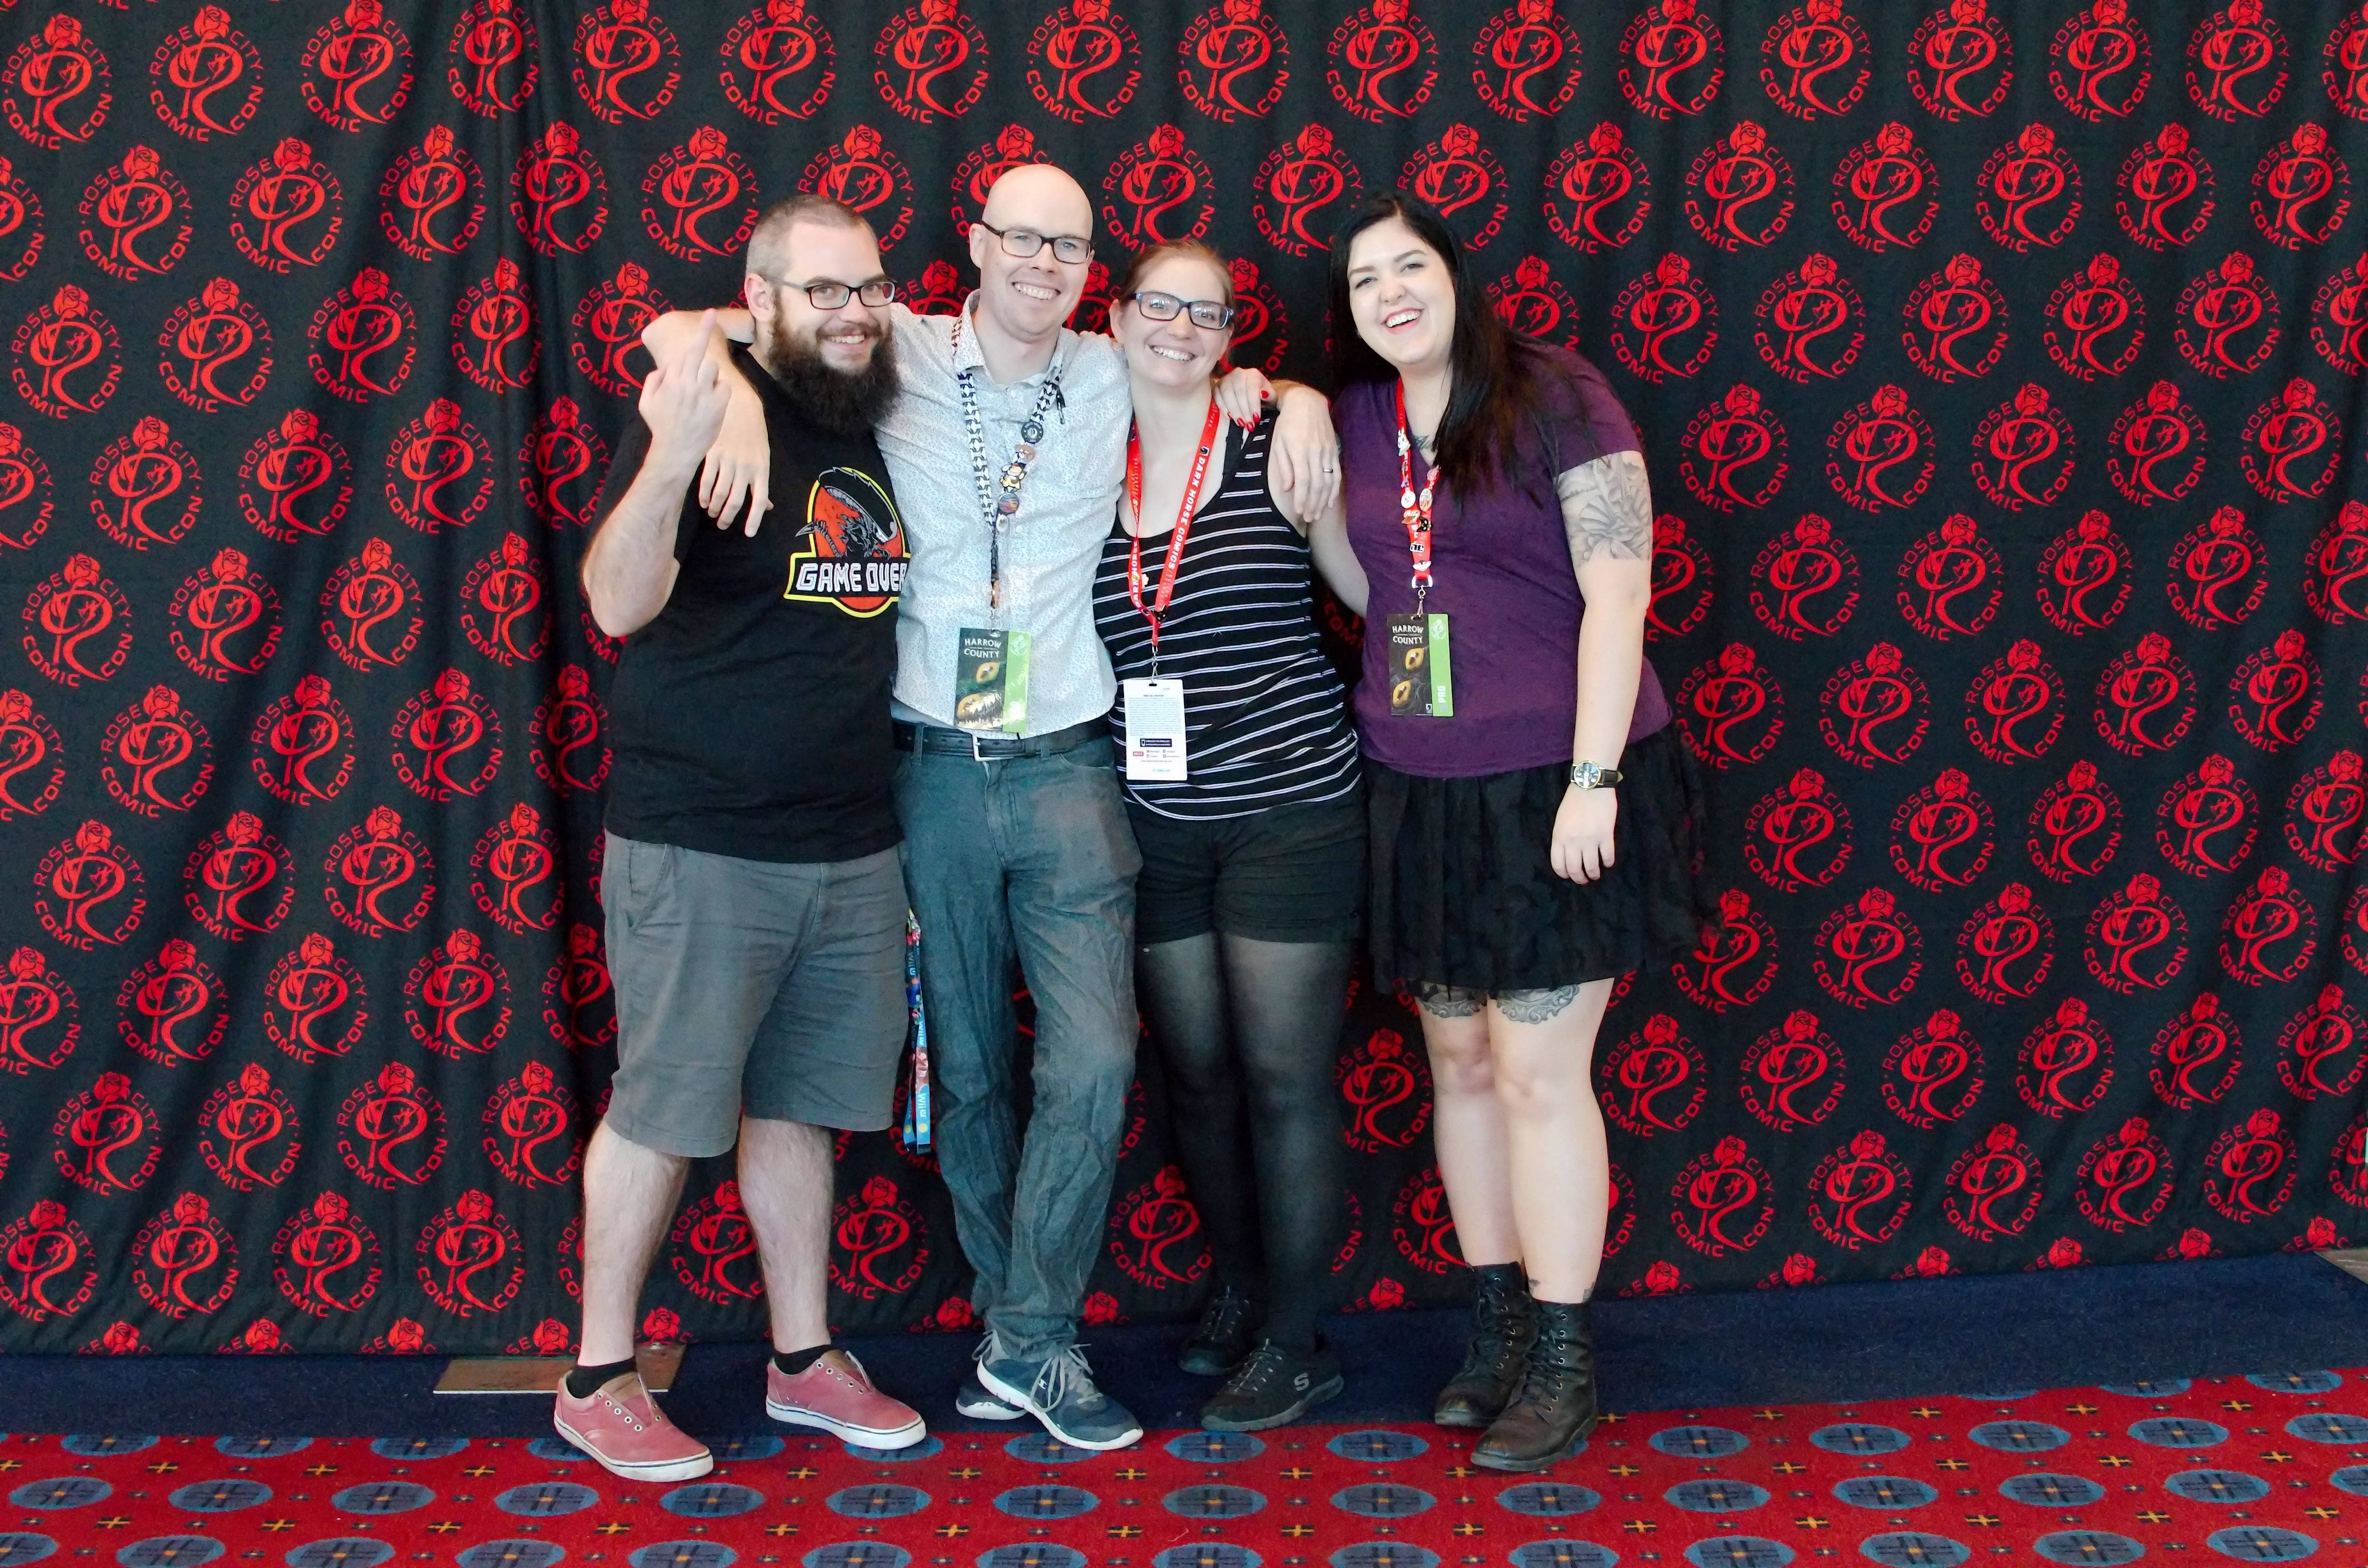 165: Rose City Comicon 2017